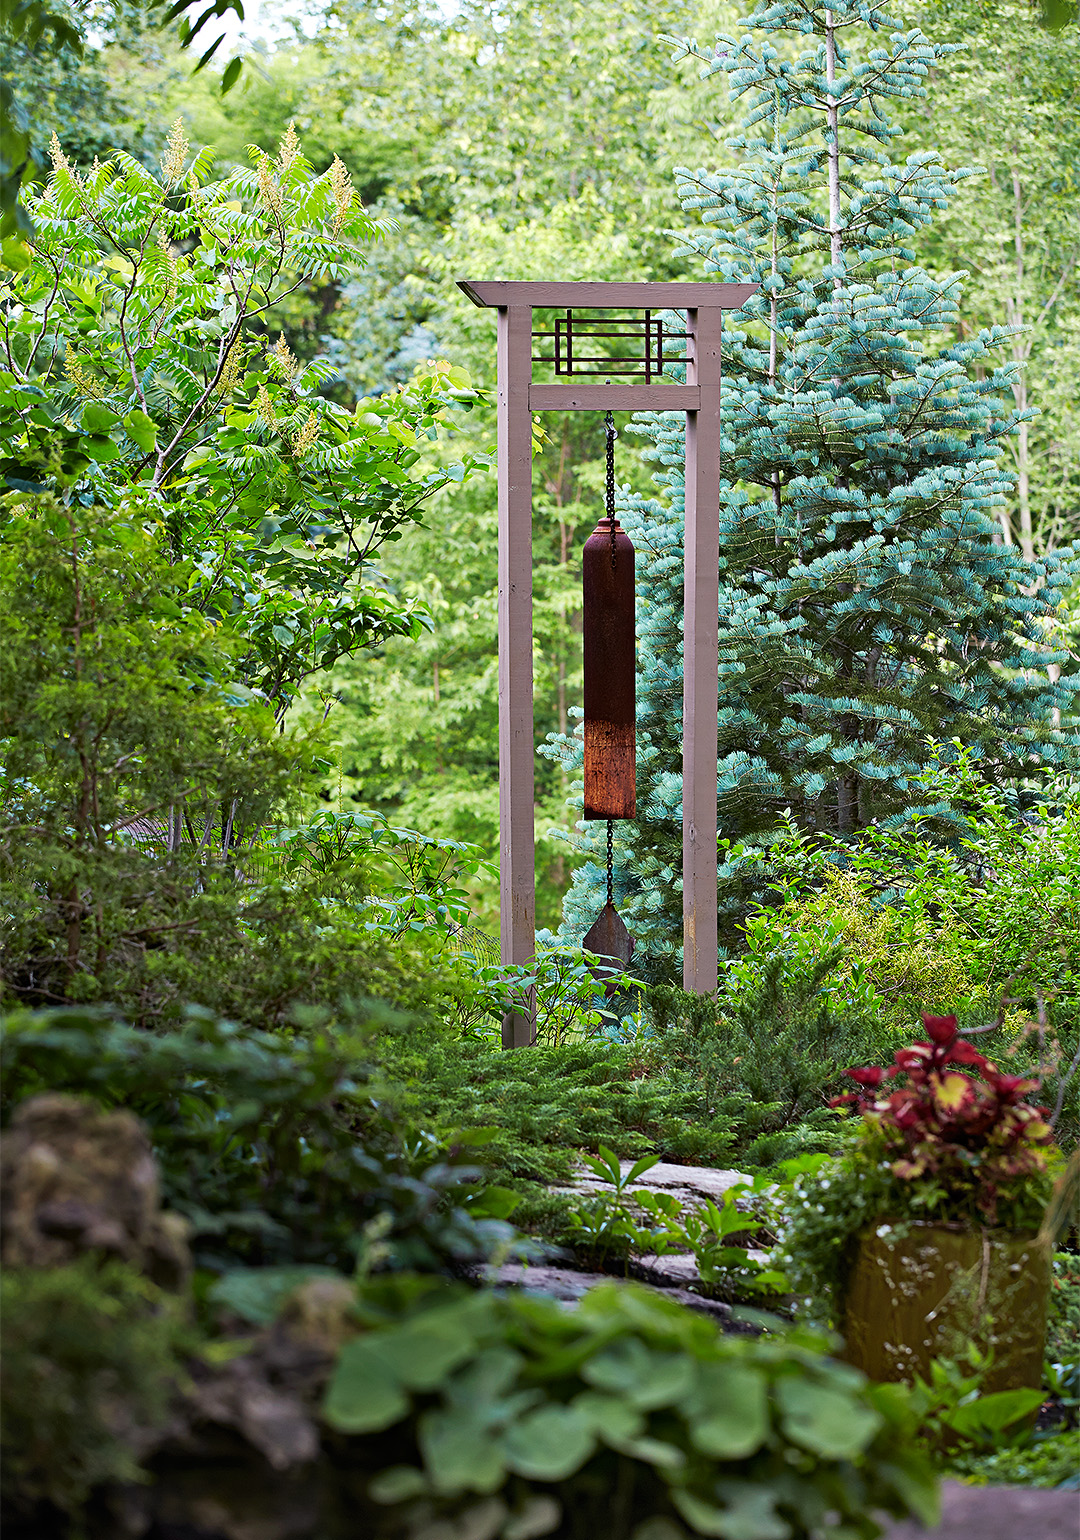 Designed To Announce That One Is Entering Into A Space Of Rebirth, The Moon  Gate Acts As A Portal And Sets The Stage For What Is To Come As Visitors  Enter.